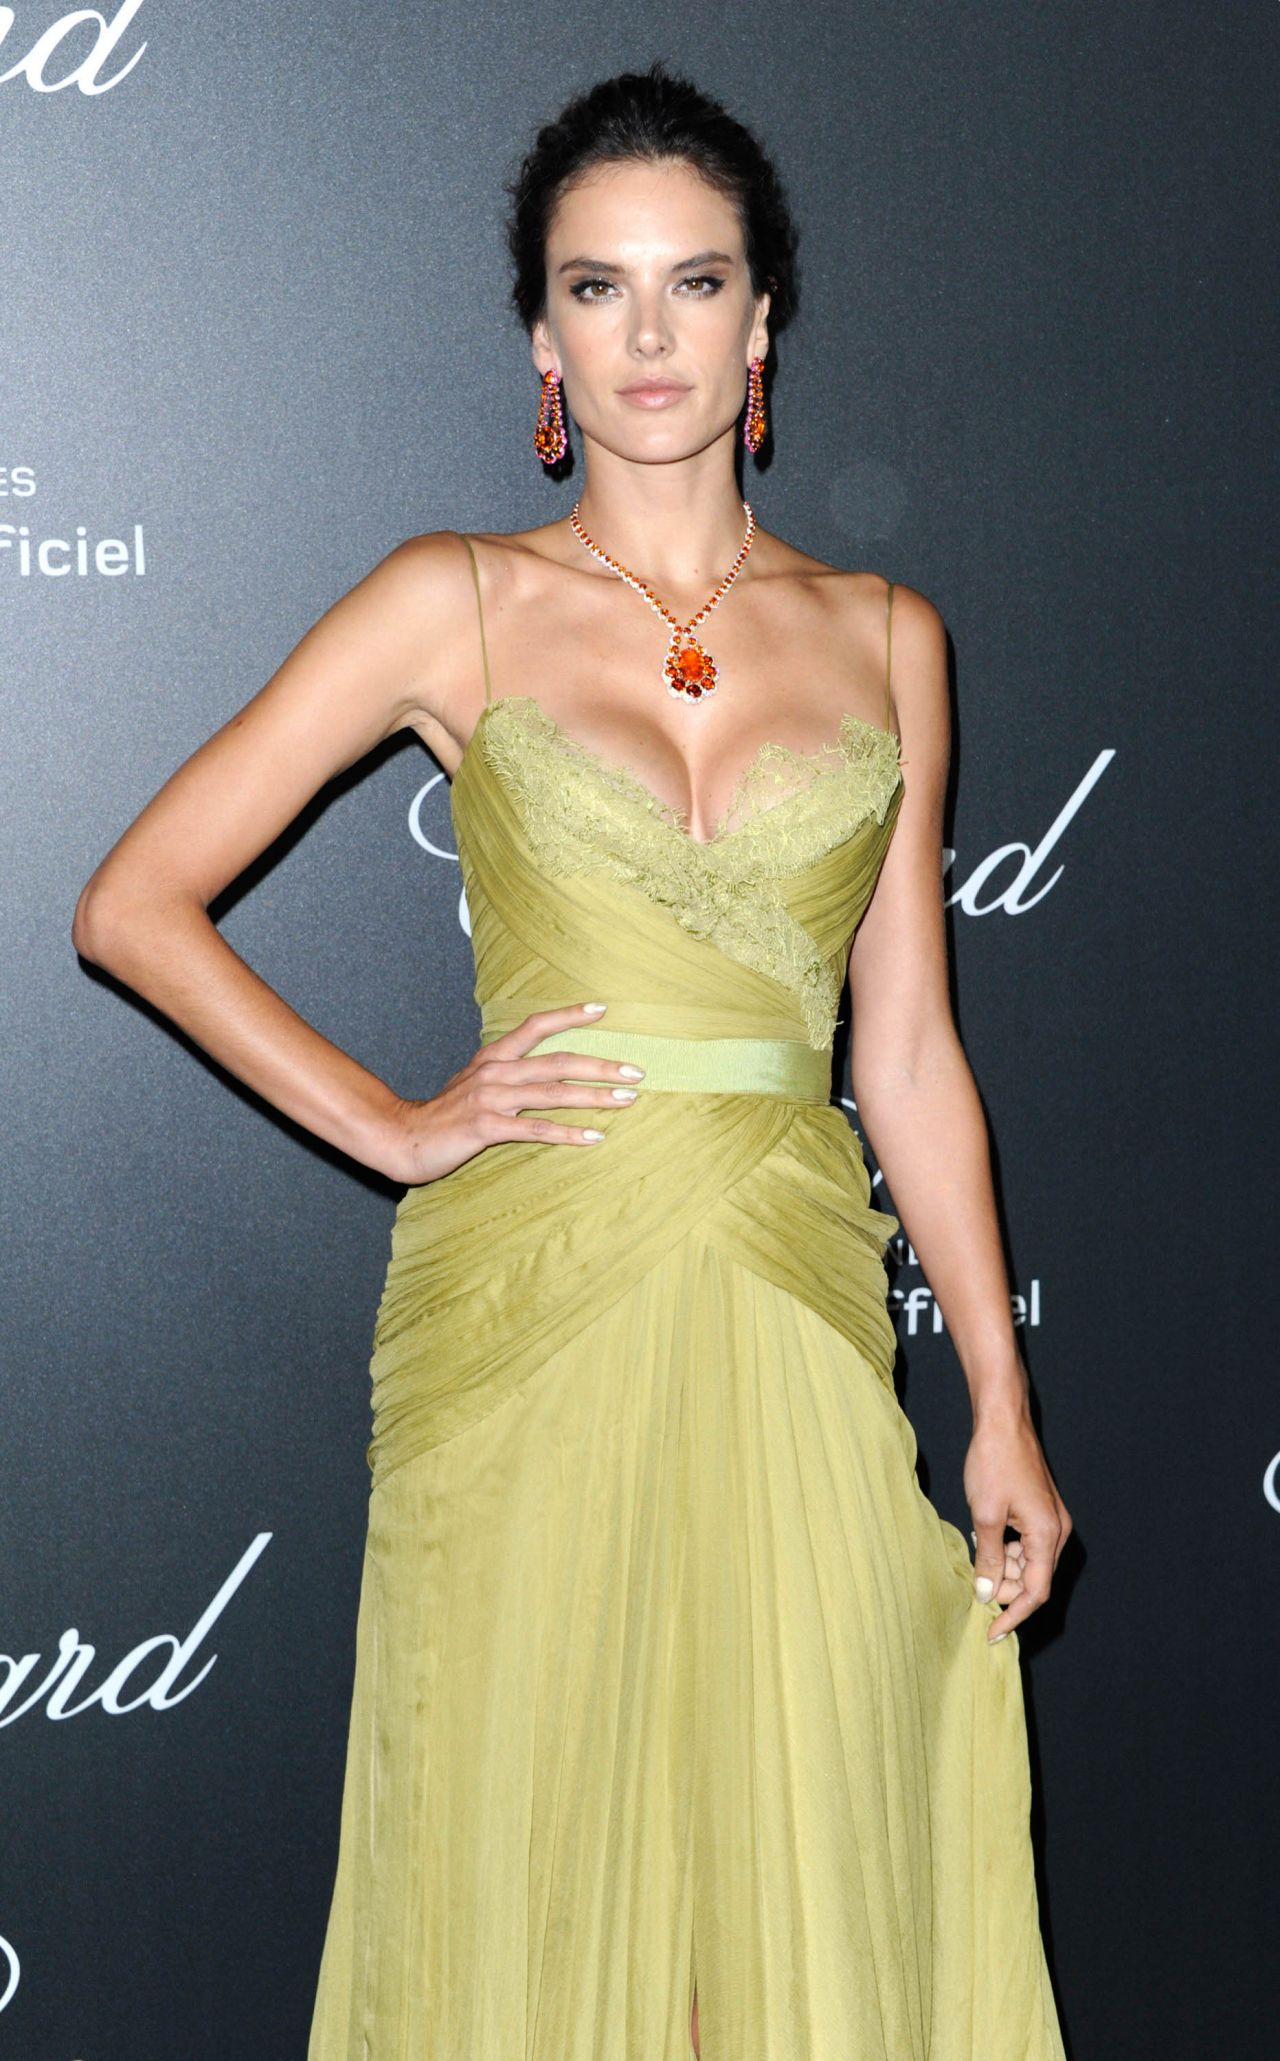 Alessandra Ambrosio in Elie Saab Couture Gown – Chopard Backstage ...